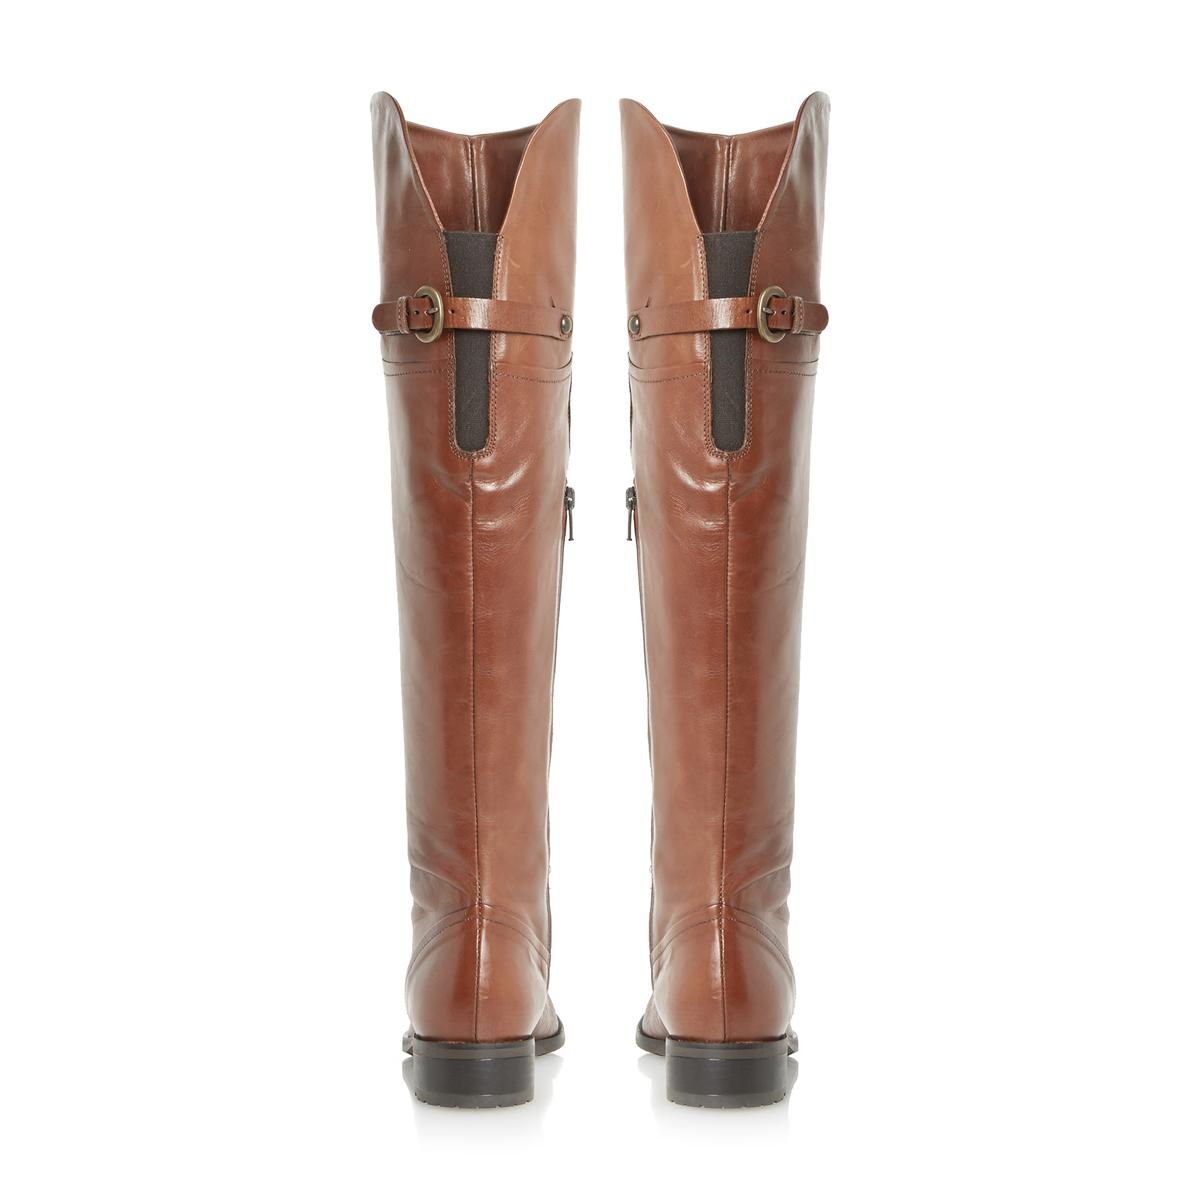 Women's Brown Valerie Shearling Over-the-knee Riding Boot $ $ From Amazon Prime Price last checked 2 hours ago Product prices and availability are accurate as of the date/time indicated and are subject to theotherqi.cf: $